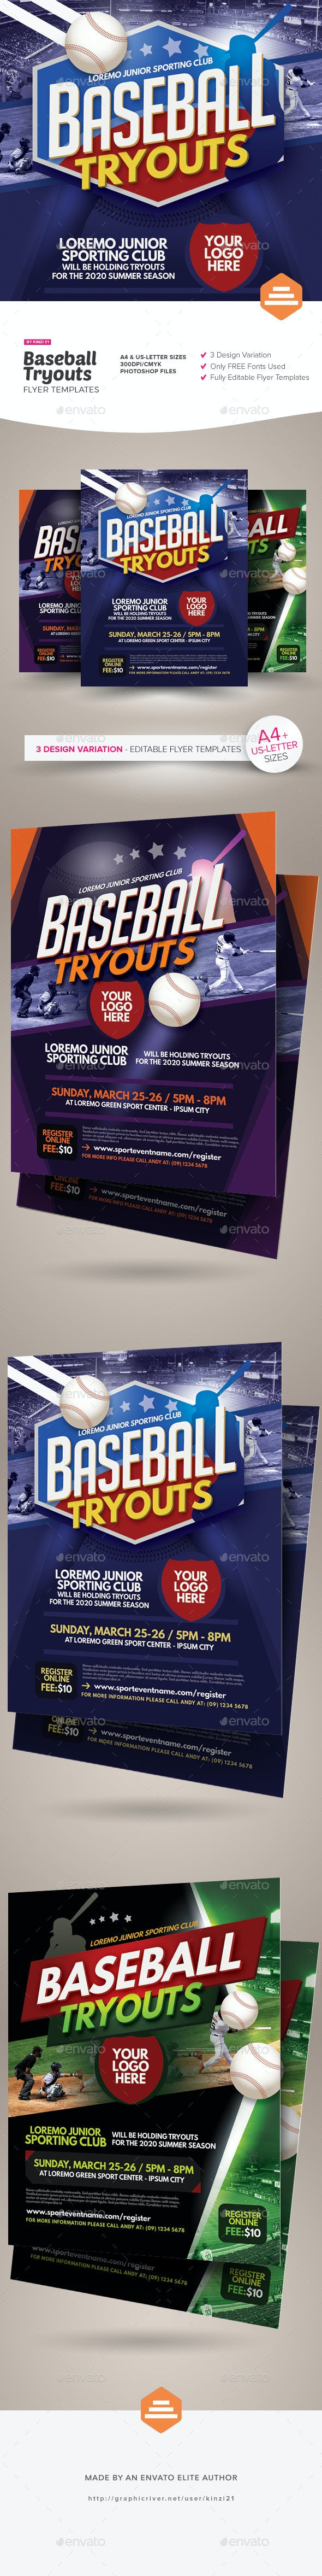 baseball tryouts flyer templates by kinzi21 graphicriver